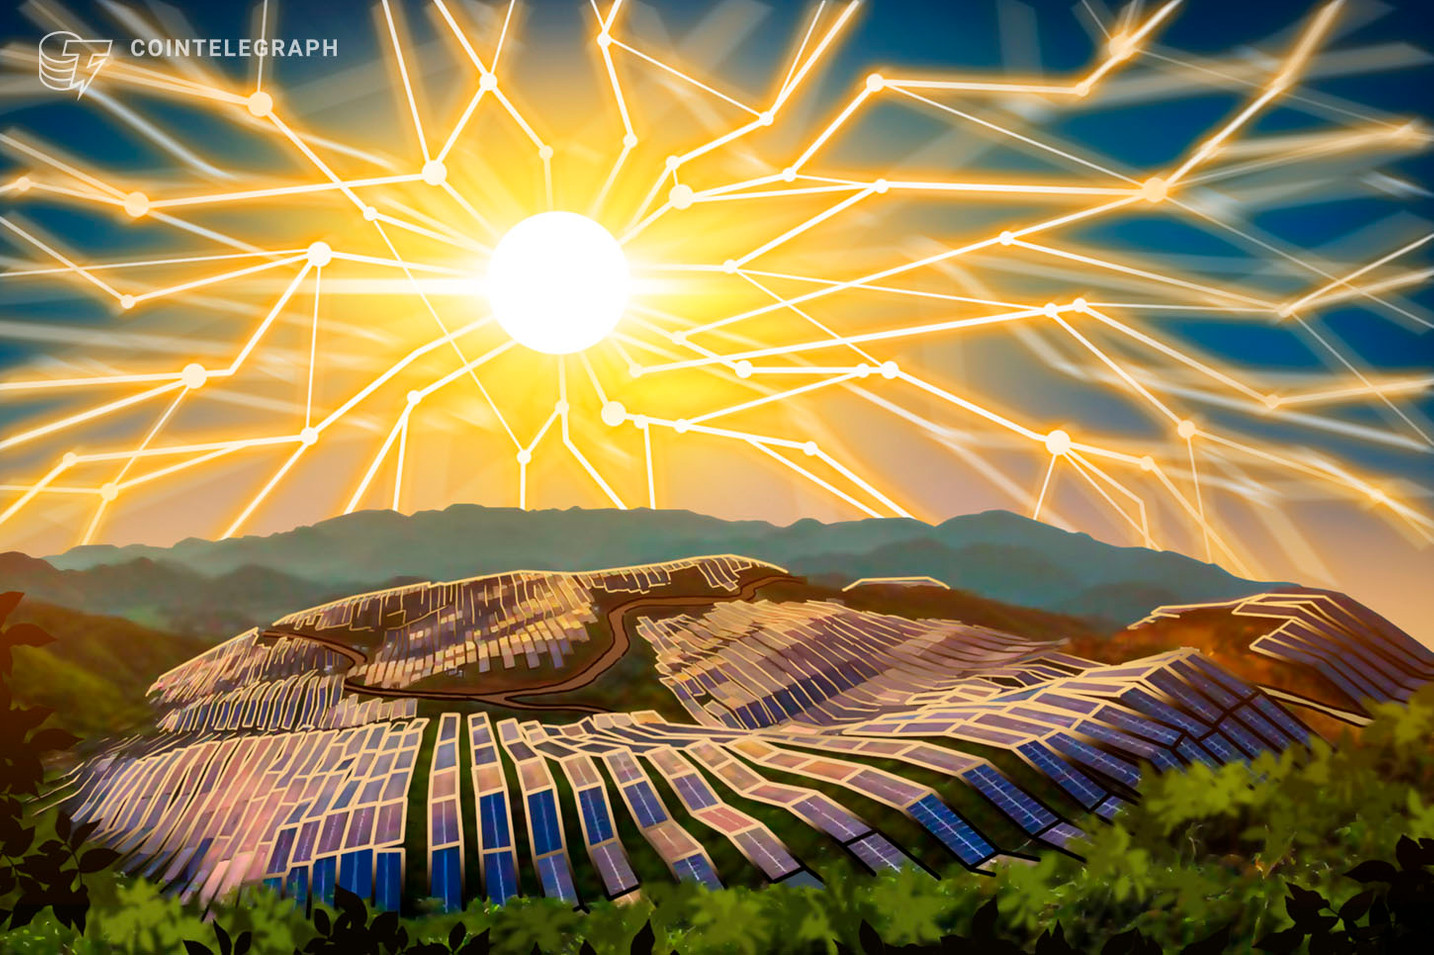 Chinese Blockchain-Based Mobile Payment Revolution: How the Biggest CO2 Polluter Is Becoming the World's Leading Producer of Solar Panels